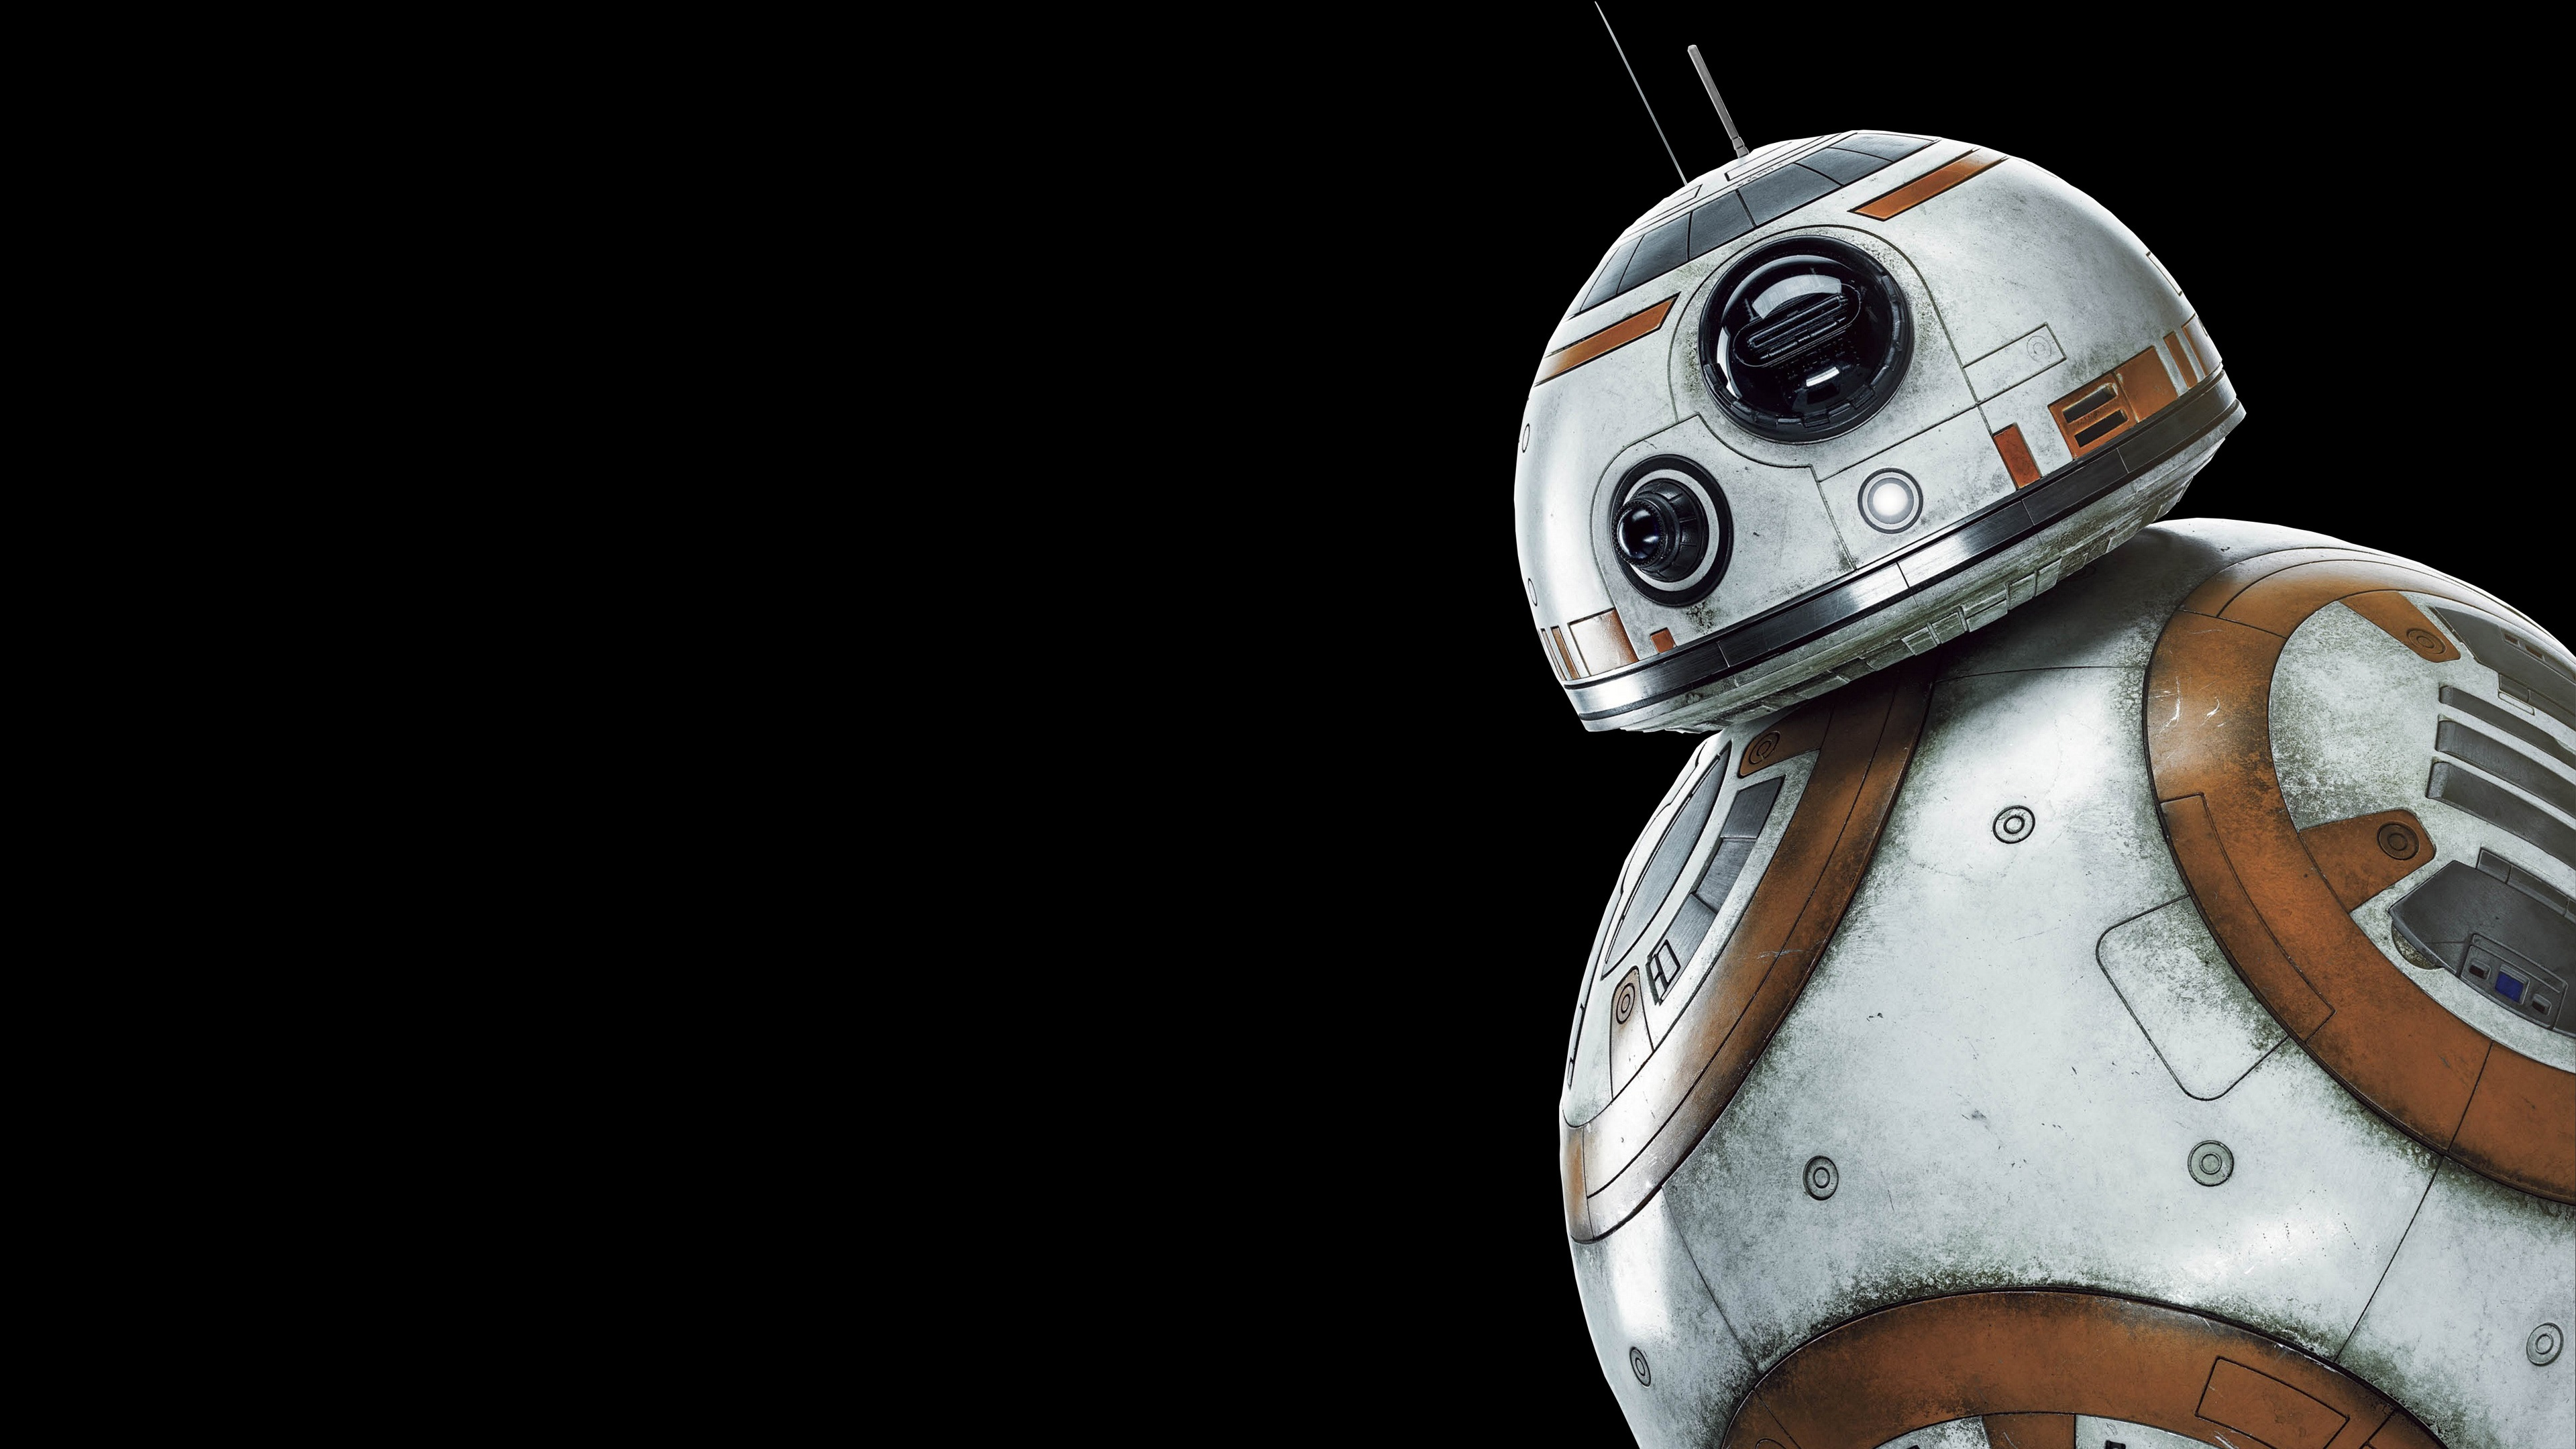 Wallpaper Bb8 Robot Star Wars 3840x2160 Uhd 4k Picture Image